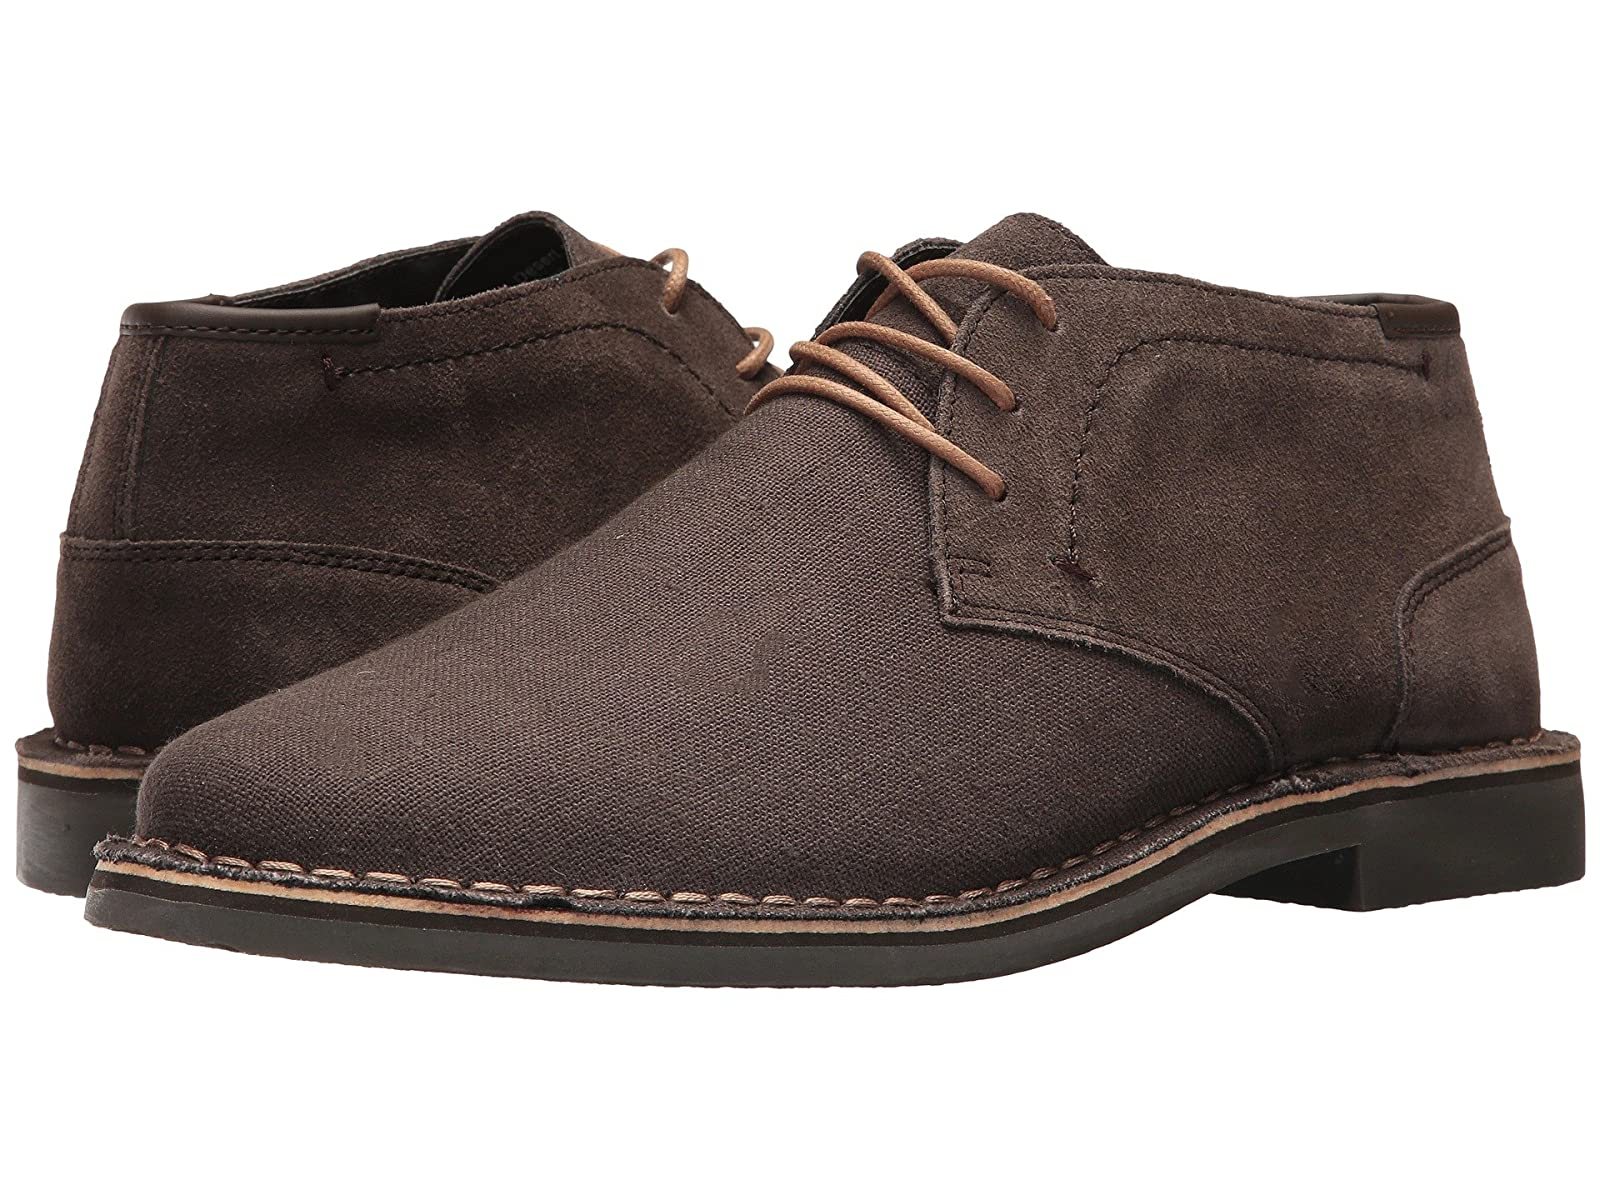 Kenneth Cole Reaction Desert SunCheap and distinctive eye-catching shoes